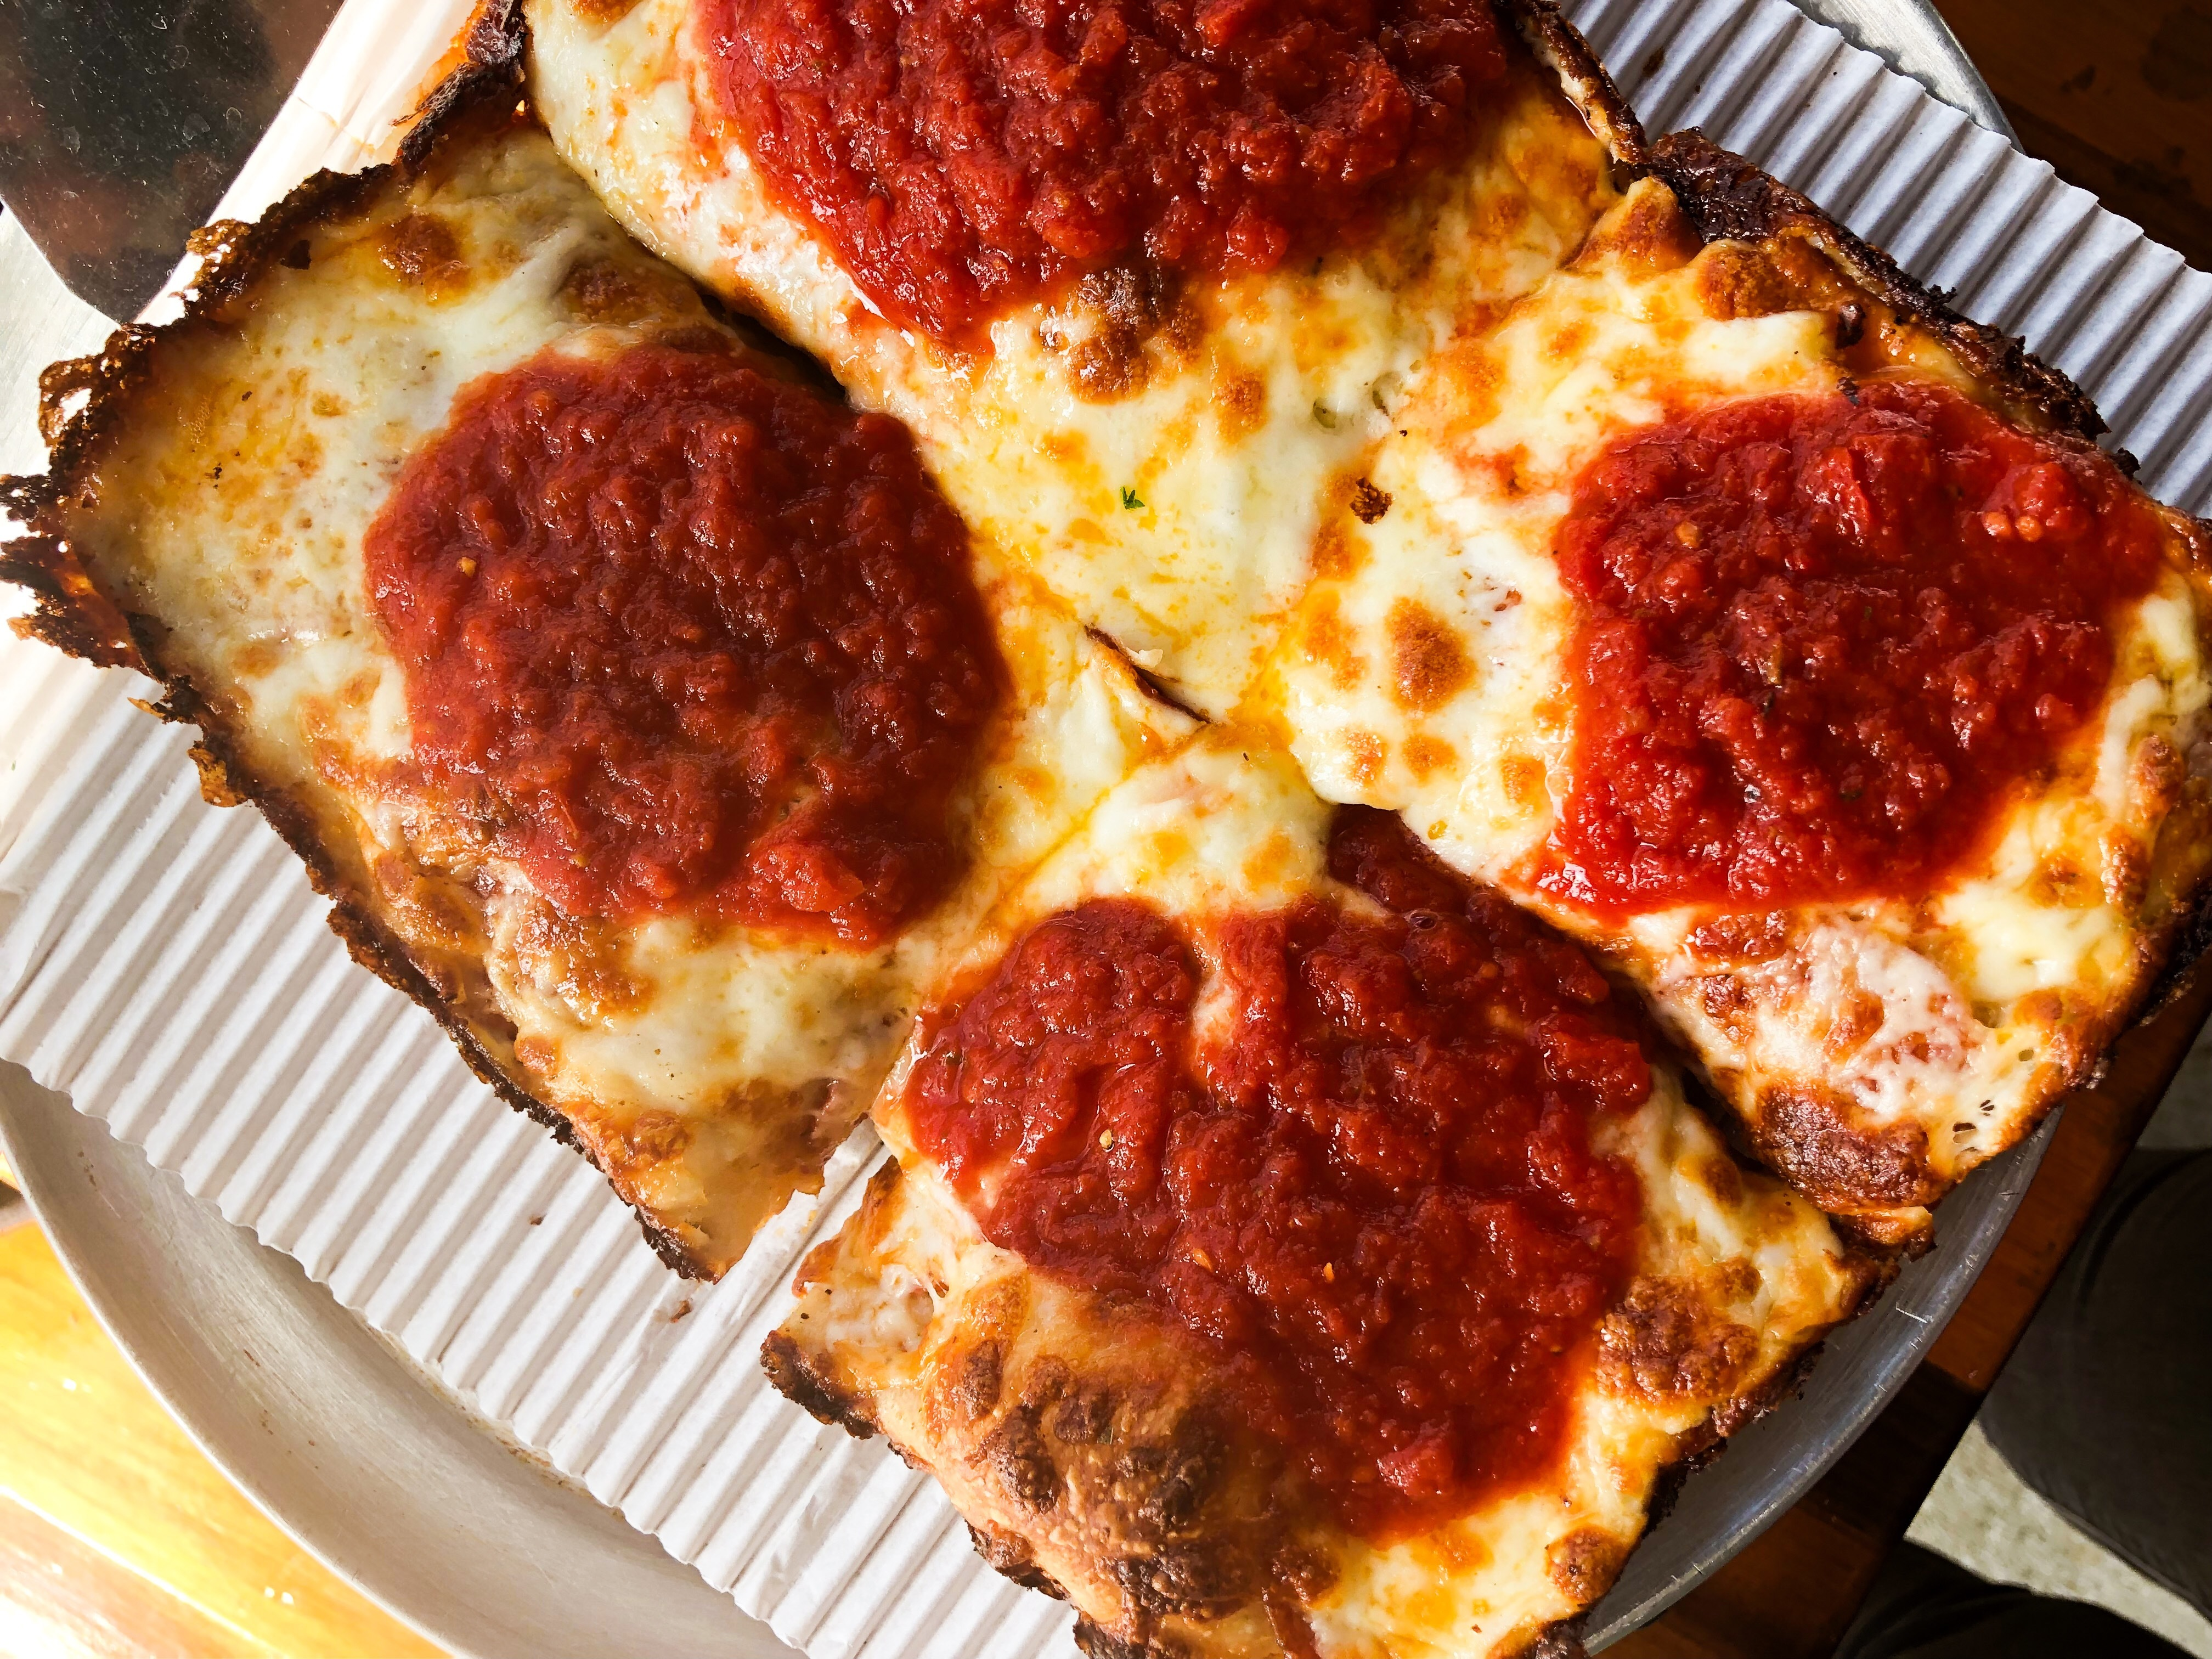 A Detroit-style pizza from Assembly Brewing, with dollops of brick-red tomato sauce